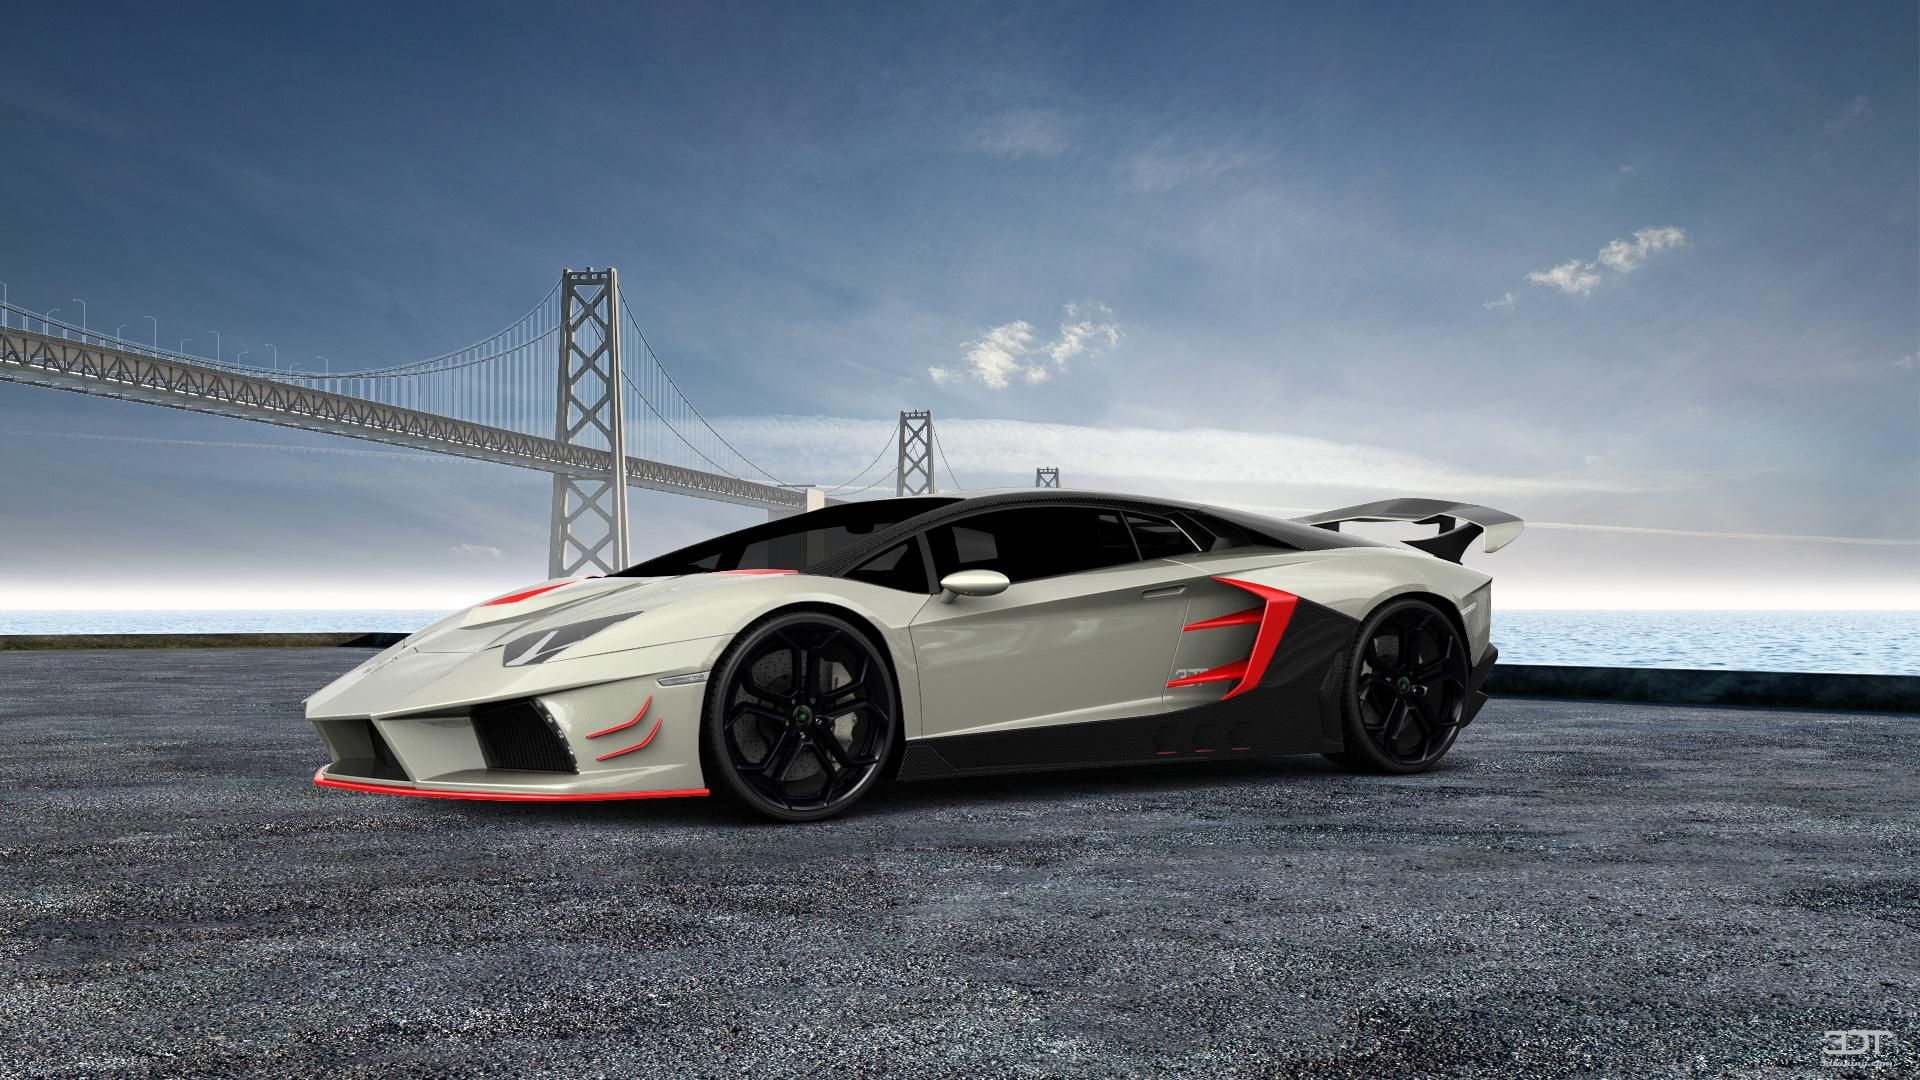 Checkout My Tuning #Lamborghini #Aventador 2012 At 3DTuning #3dtuning  #tuning